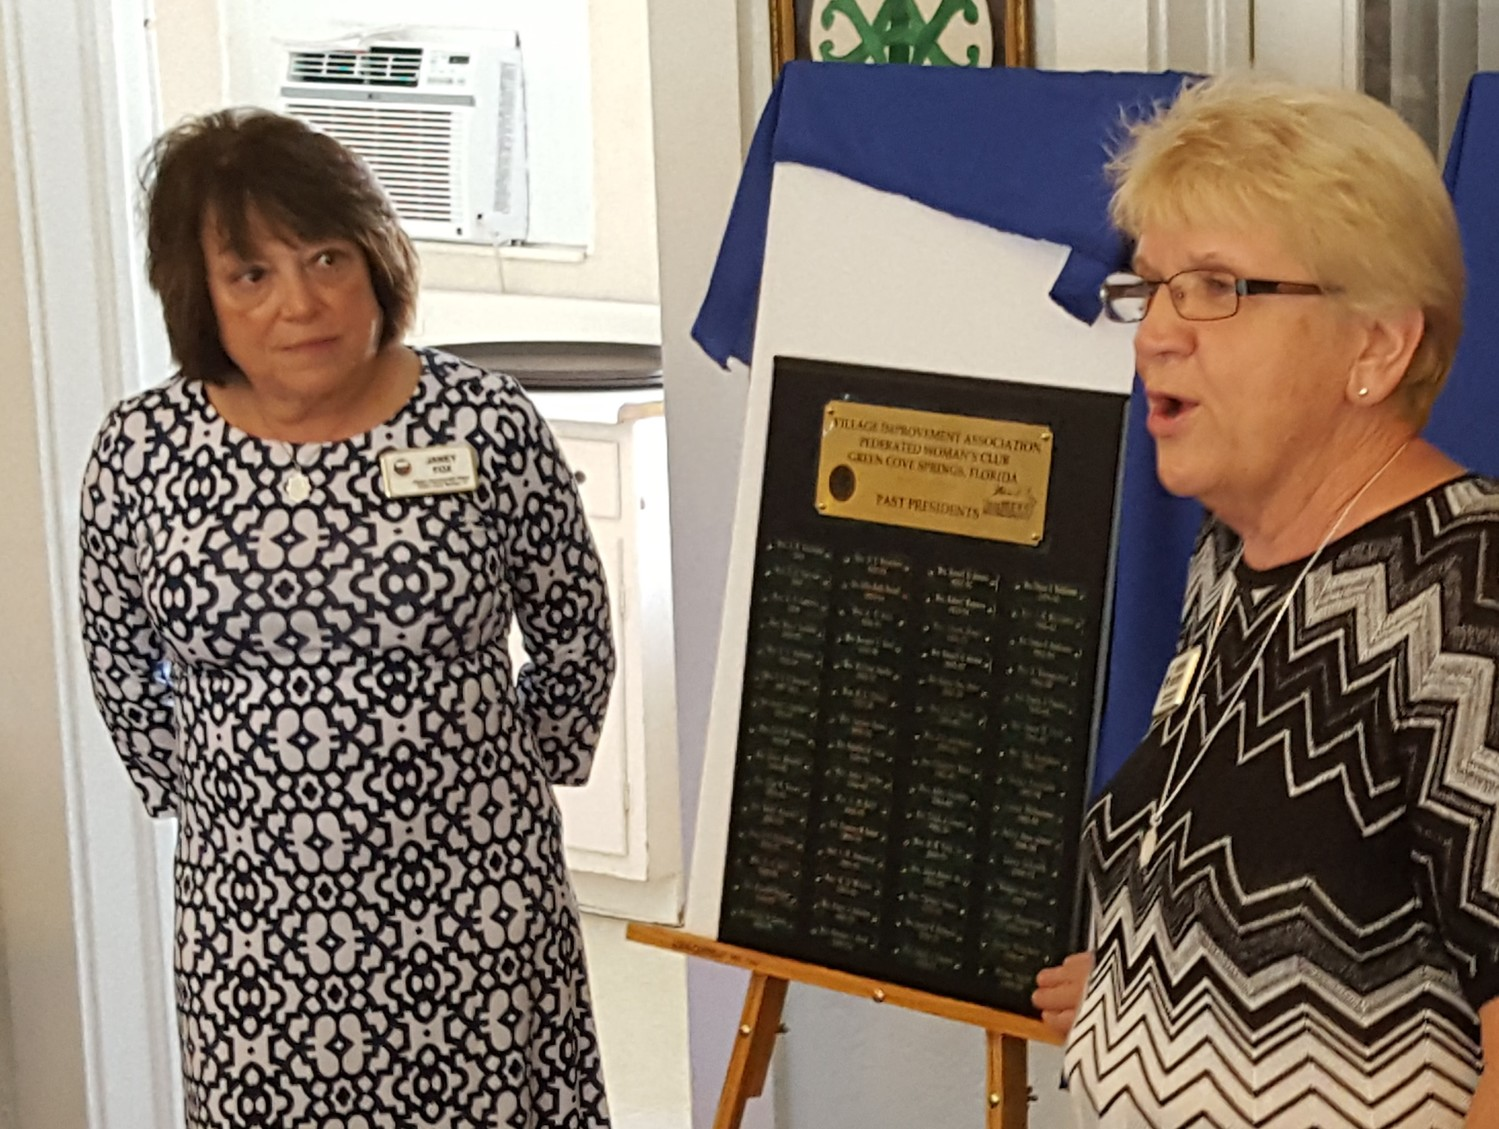 Left to Right: Vice President Janey Fox and President Theresa Crockett unveil a commemorative plaque honoring the past presidents of VIA.